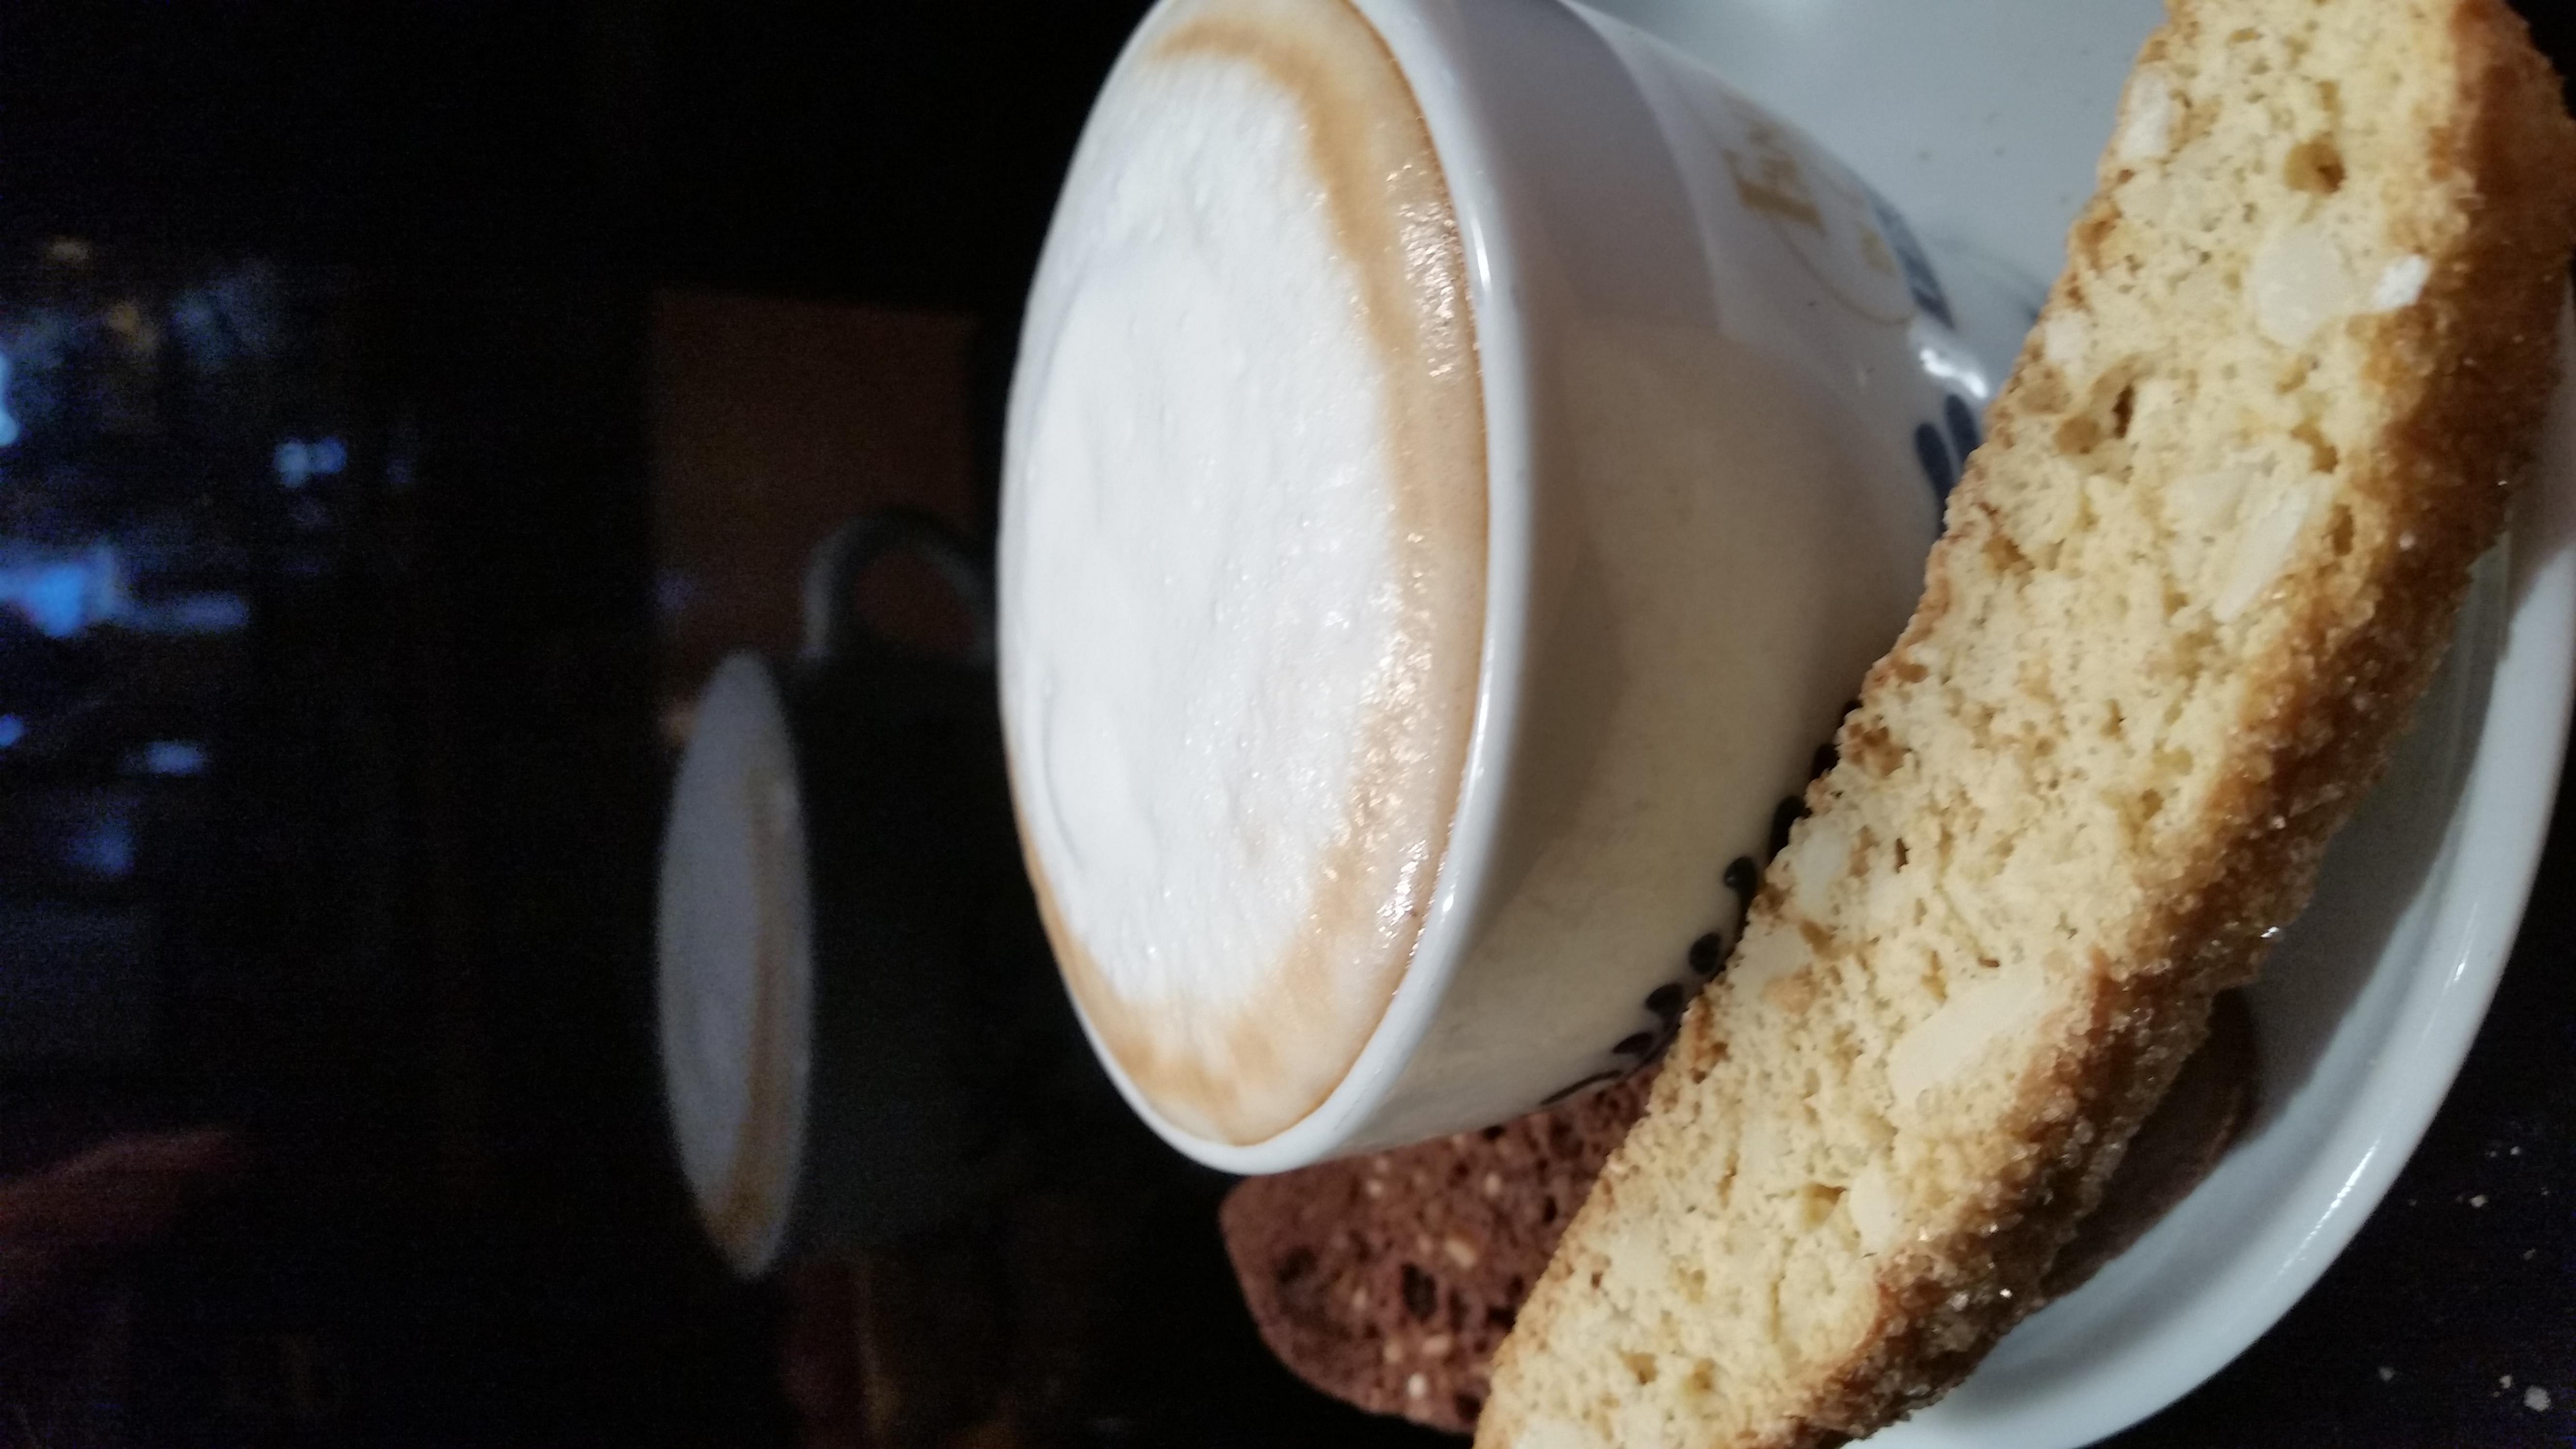 Cappuccino and Homemade Ginger Almond Biscotti at South Street Creamery Cafe